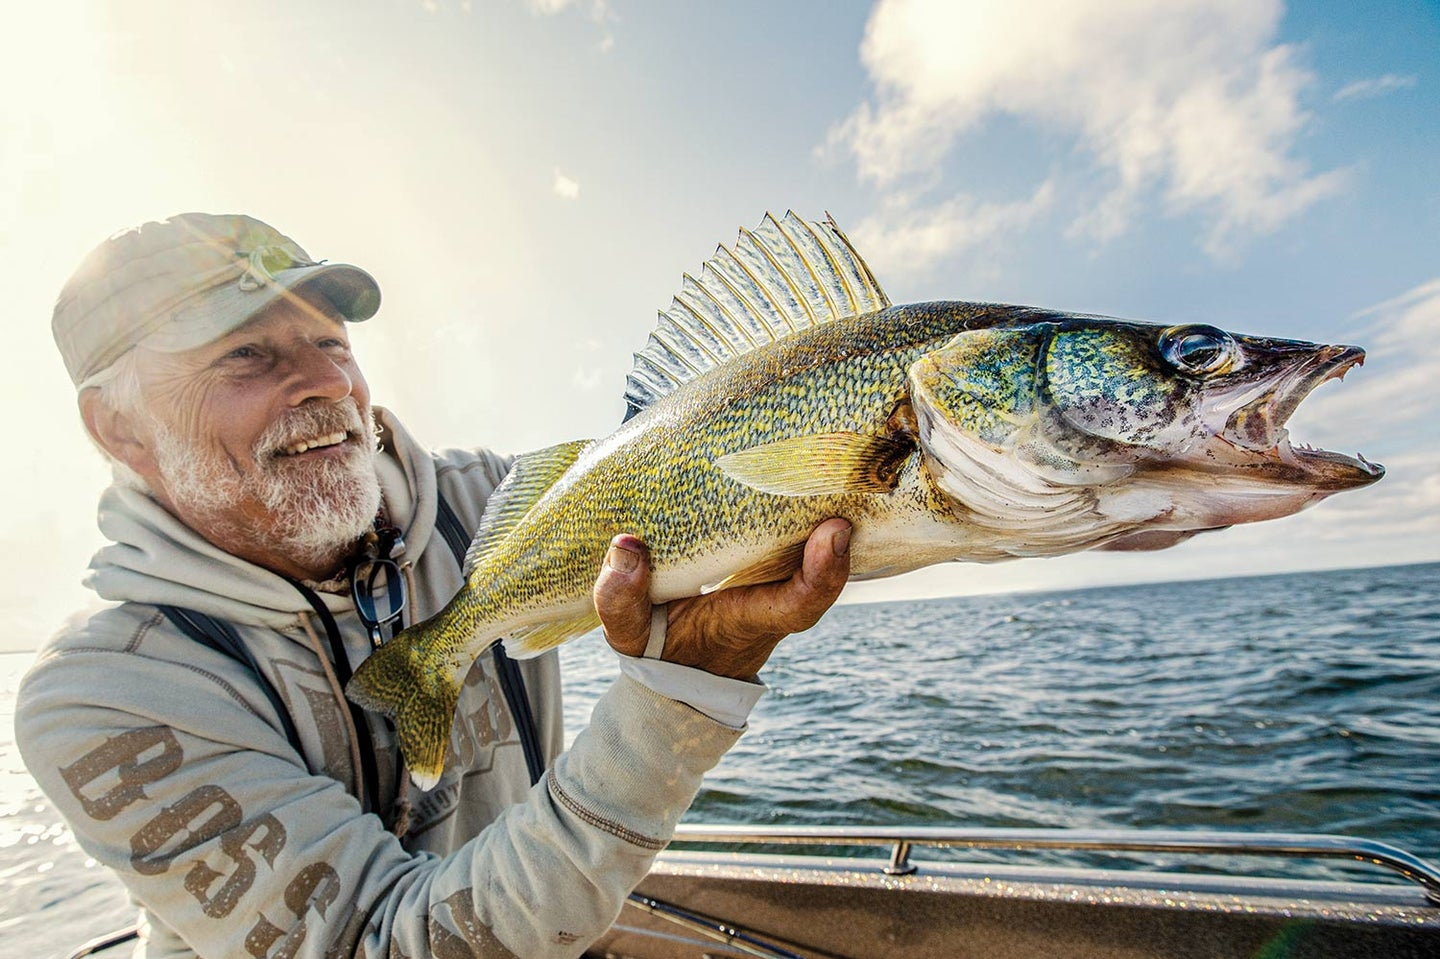 Angler holding up a walleye.